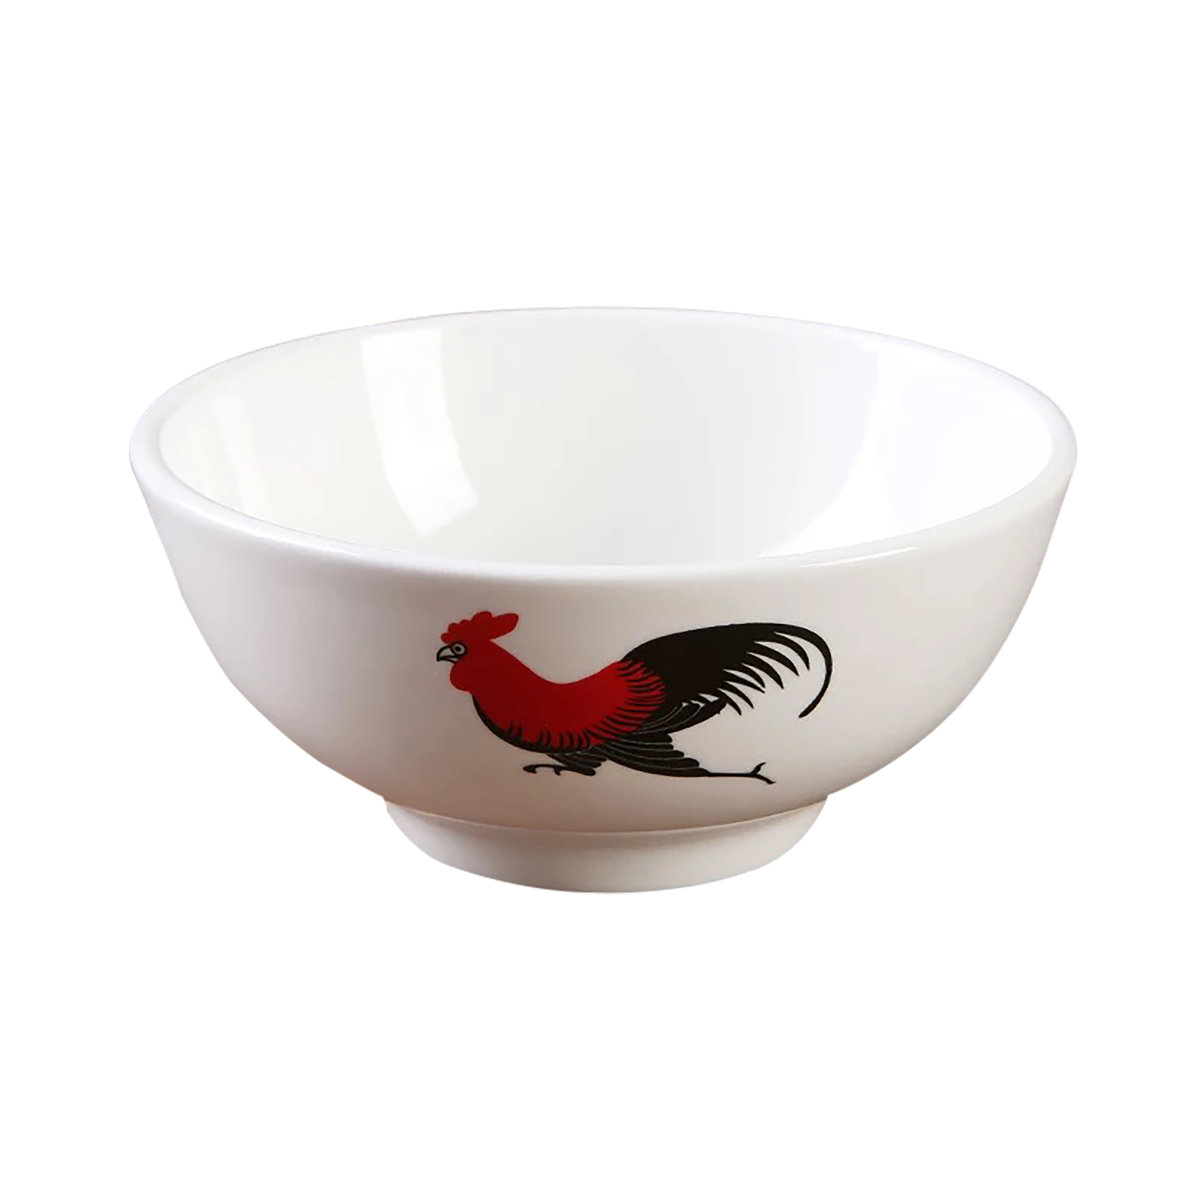 Magnesium porcelain chicken 4.5 inch wing bowl [6 Pack]